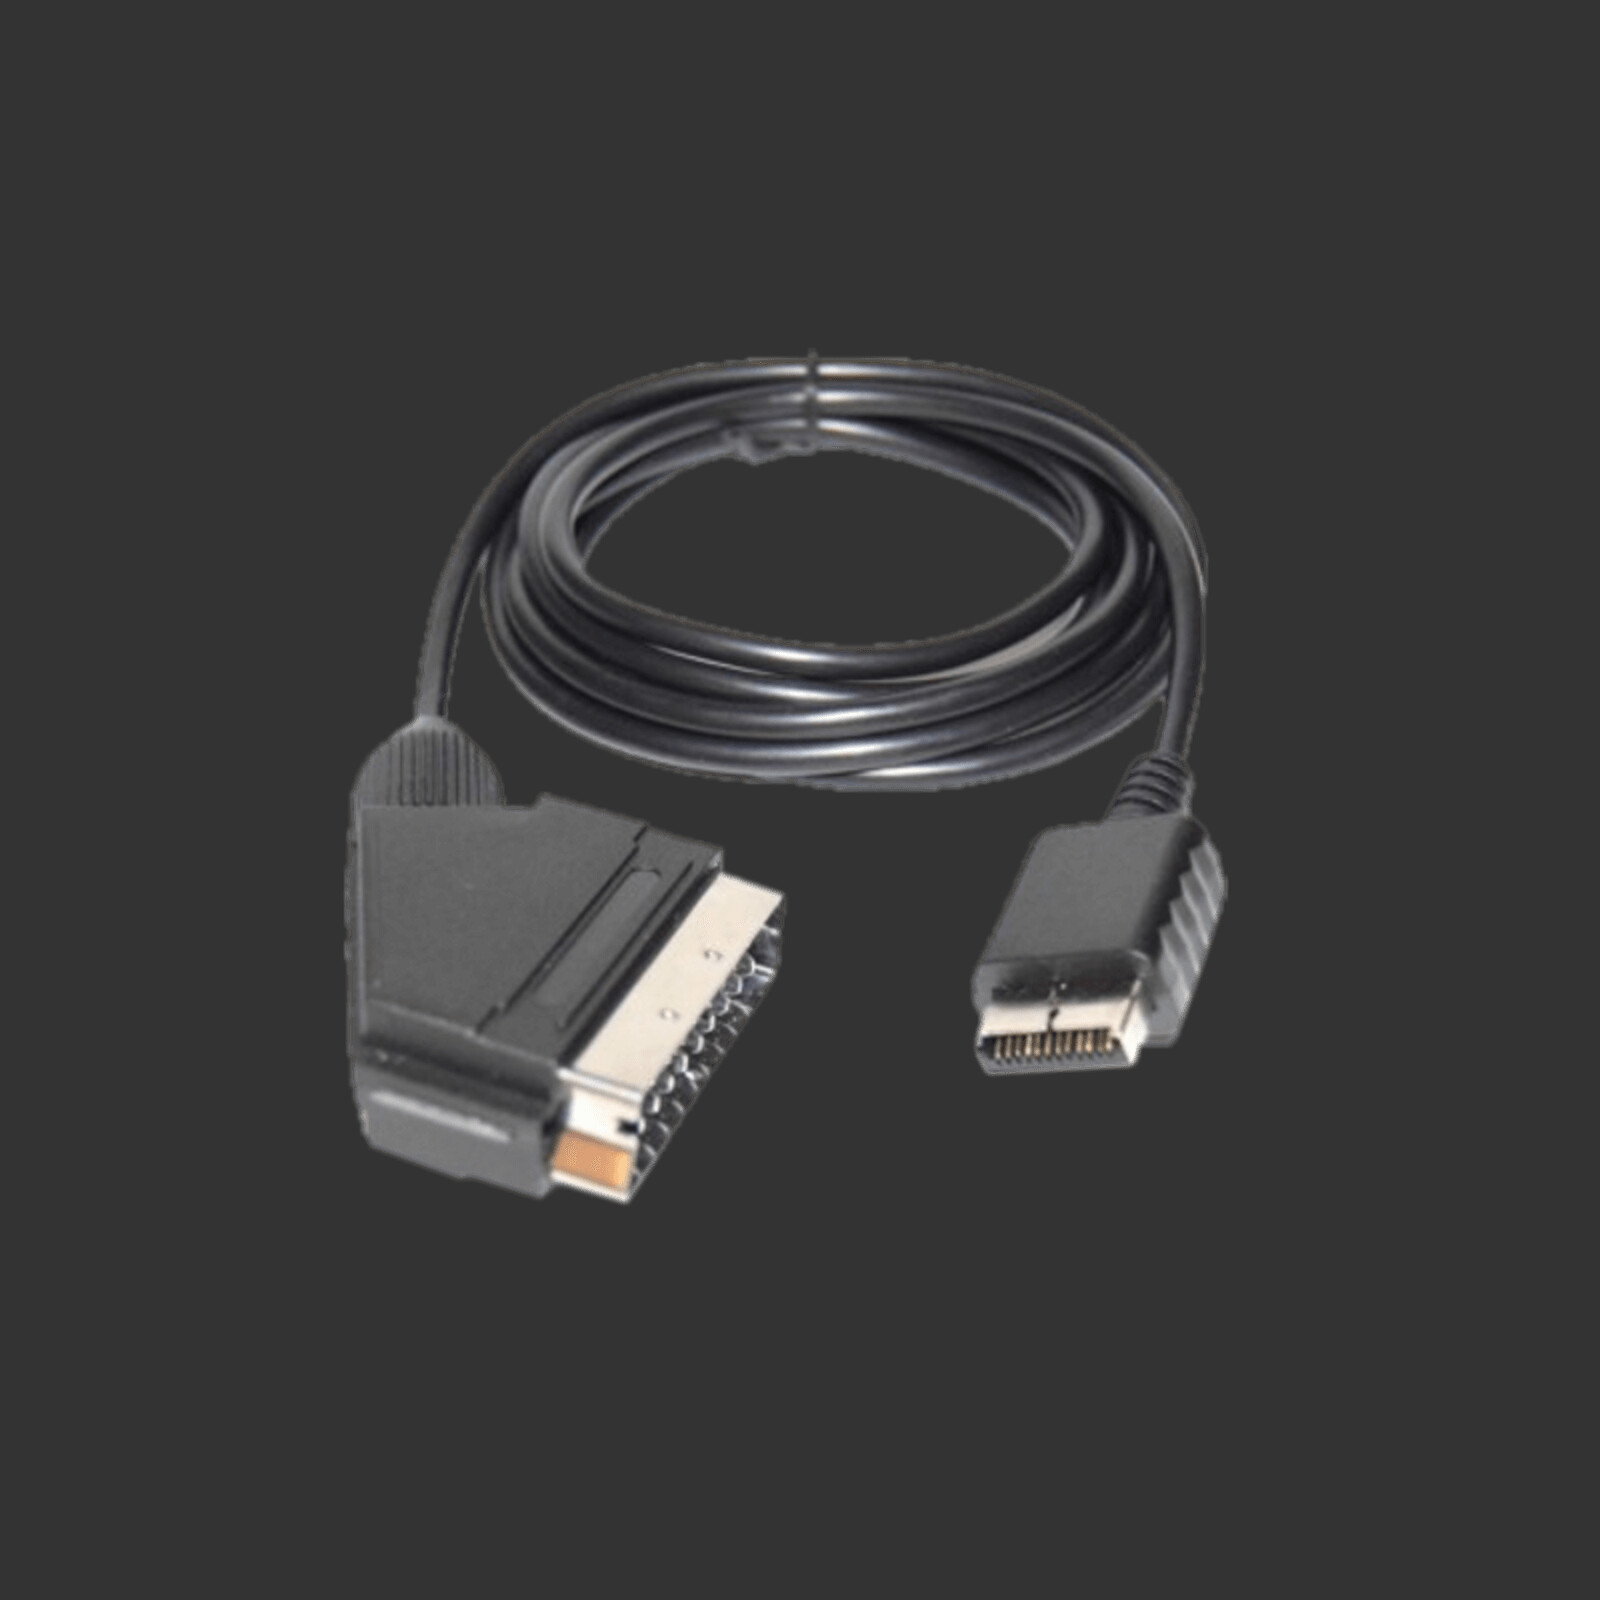 PS1 / PS2 / PS3 RGB Scart Cable